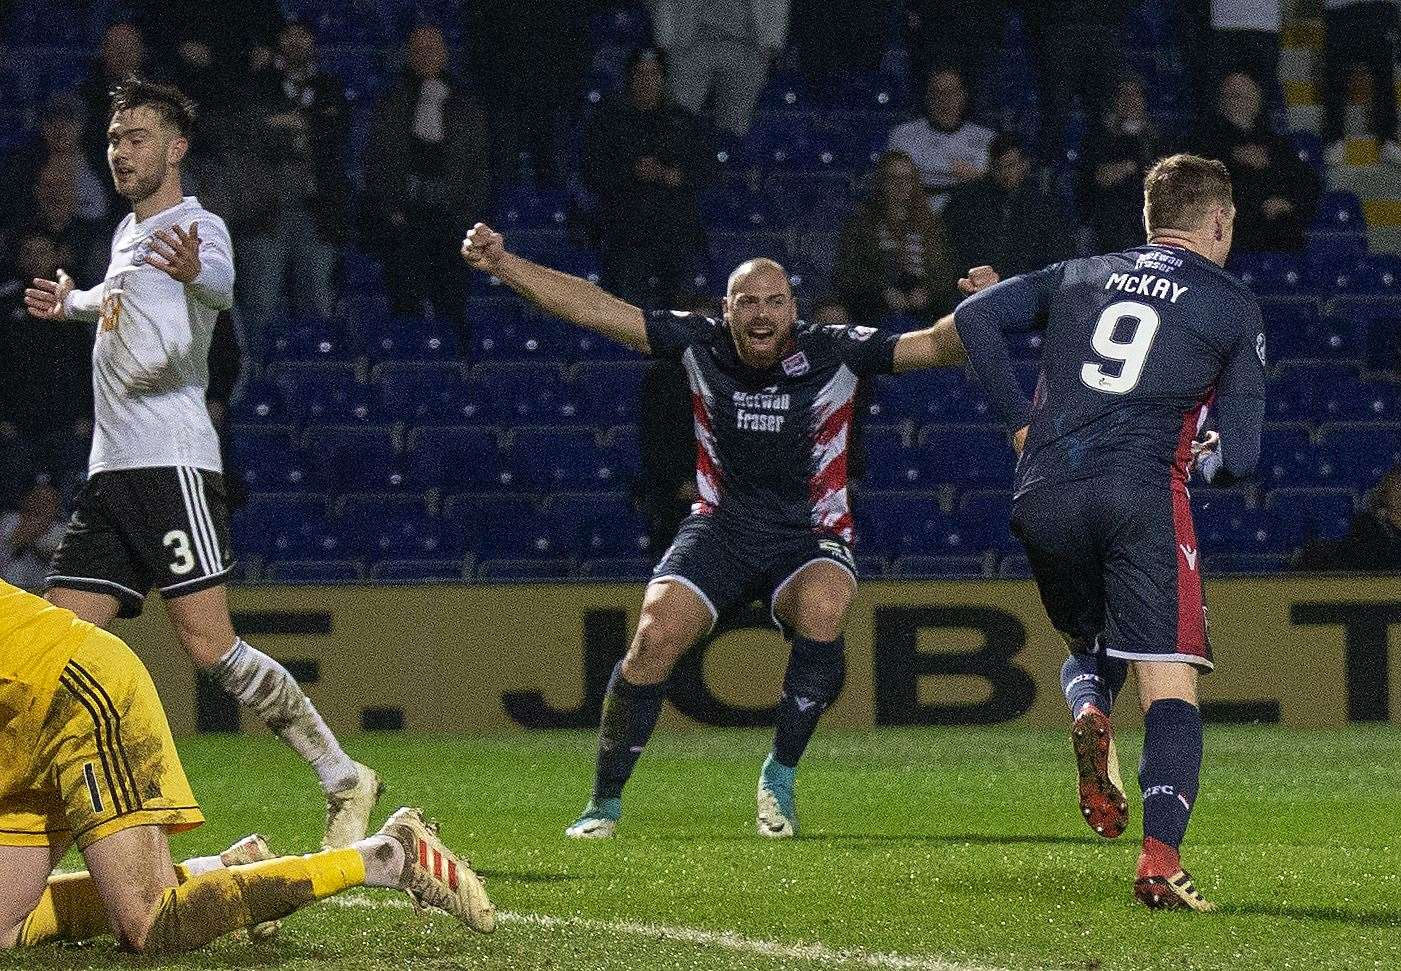 Kenny van der Weg has had plenty of reason to celebrate since rejoining the Staggies at the start of the year. Picture: Ken Macpherson